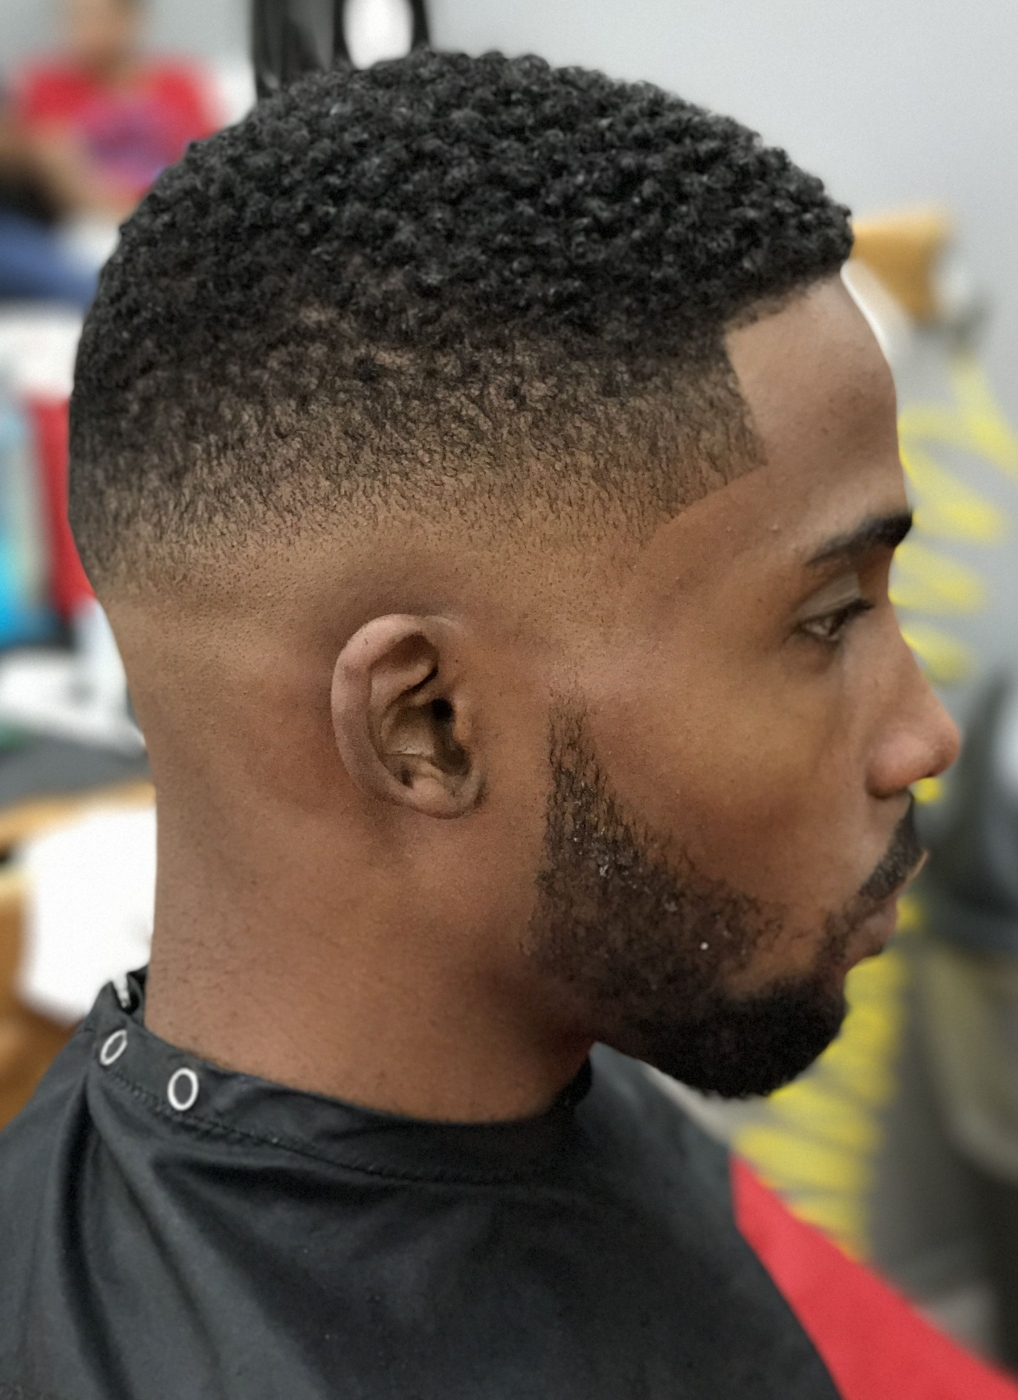 Swell 16 Freshest Black Men Haircut Ideas That Are Iconic Natural Hairstyles Runnerswayorg